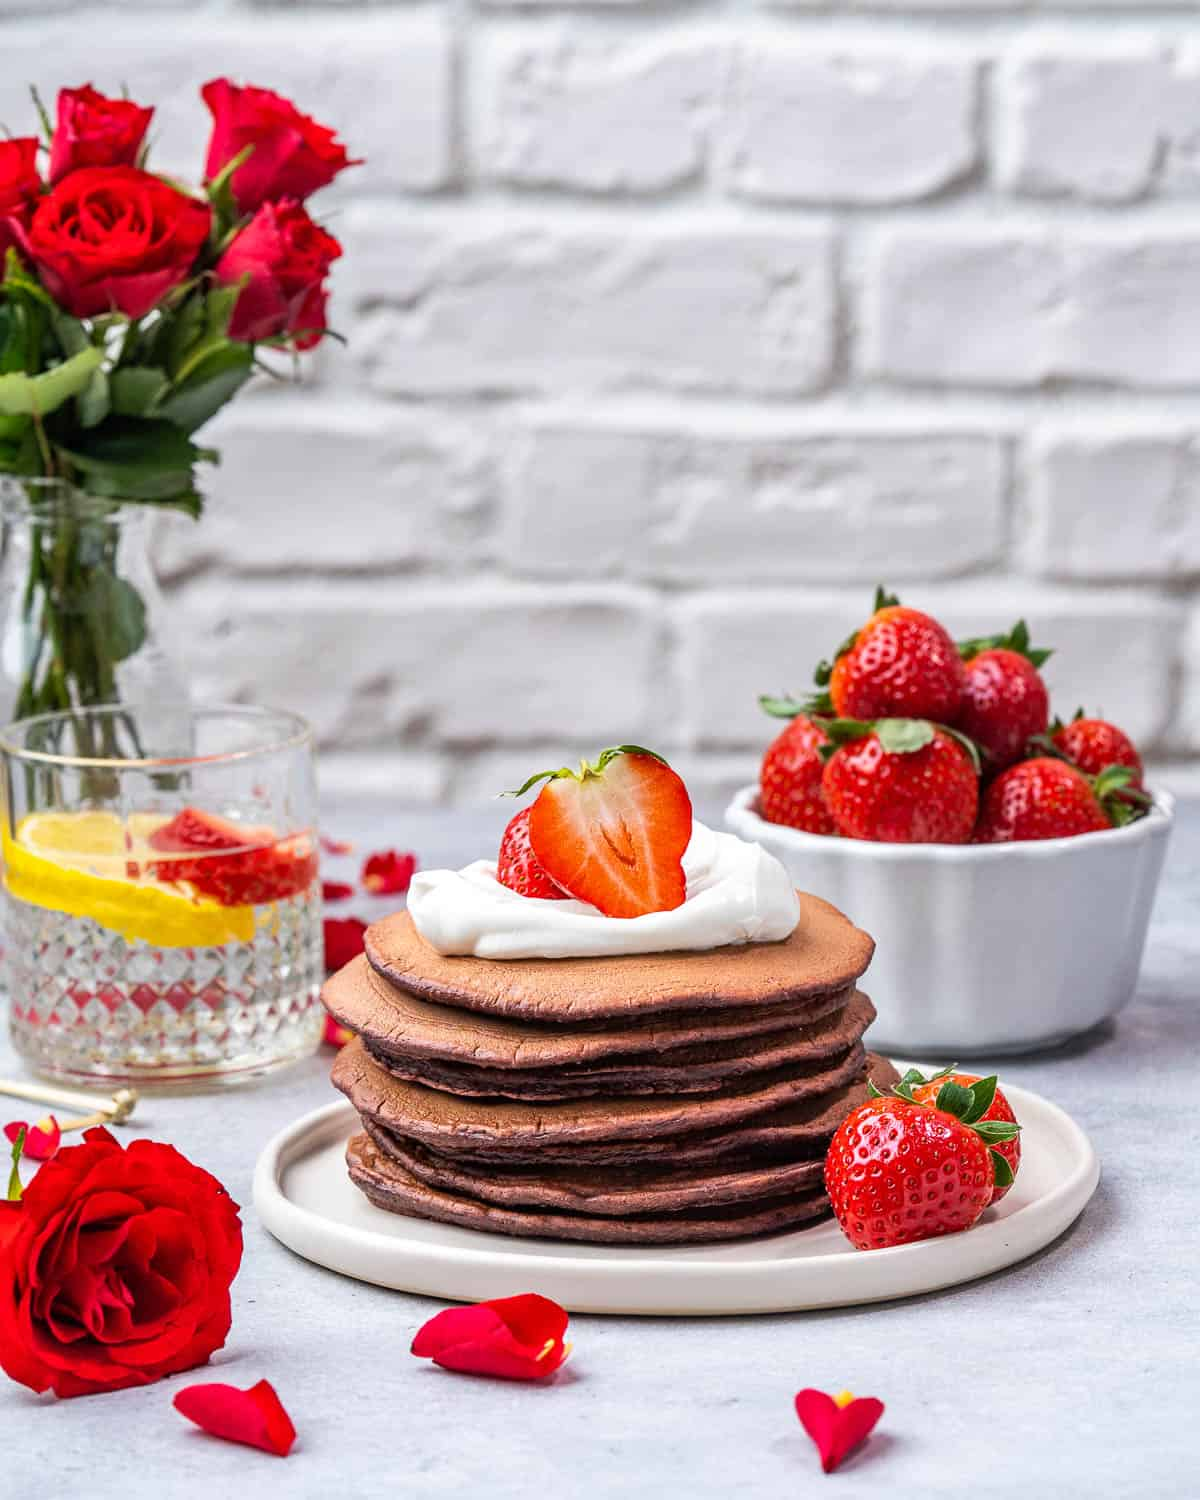 Red velvet pancakes stacked on plate with toppings.